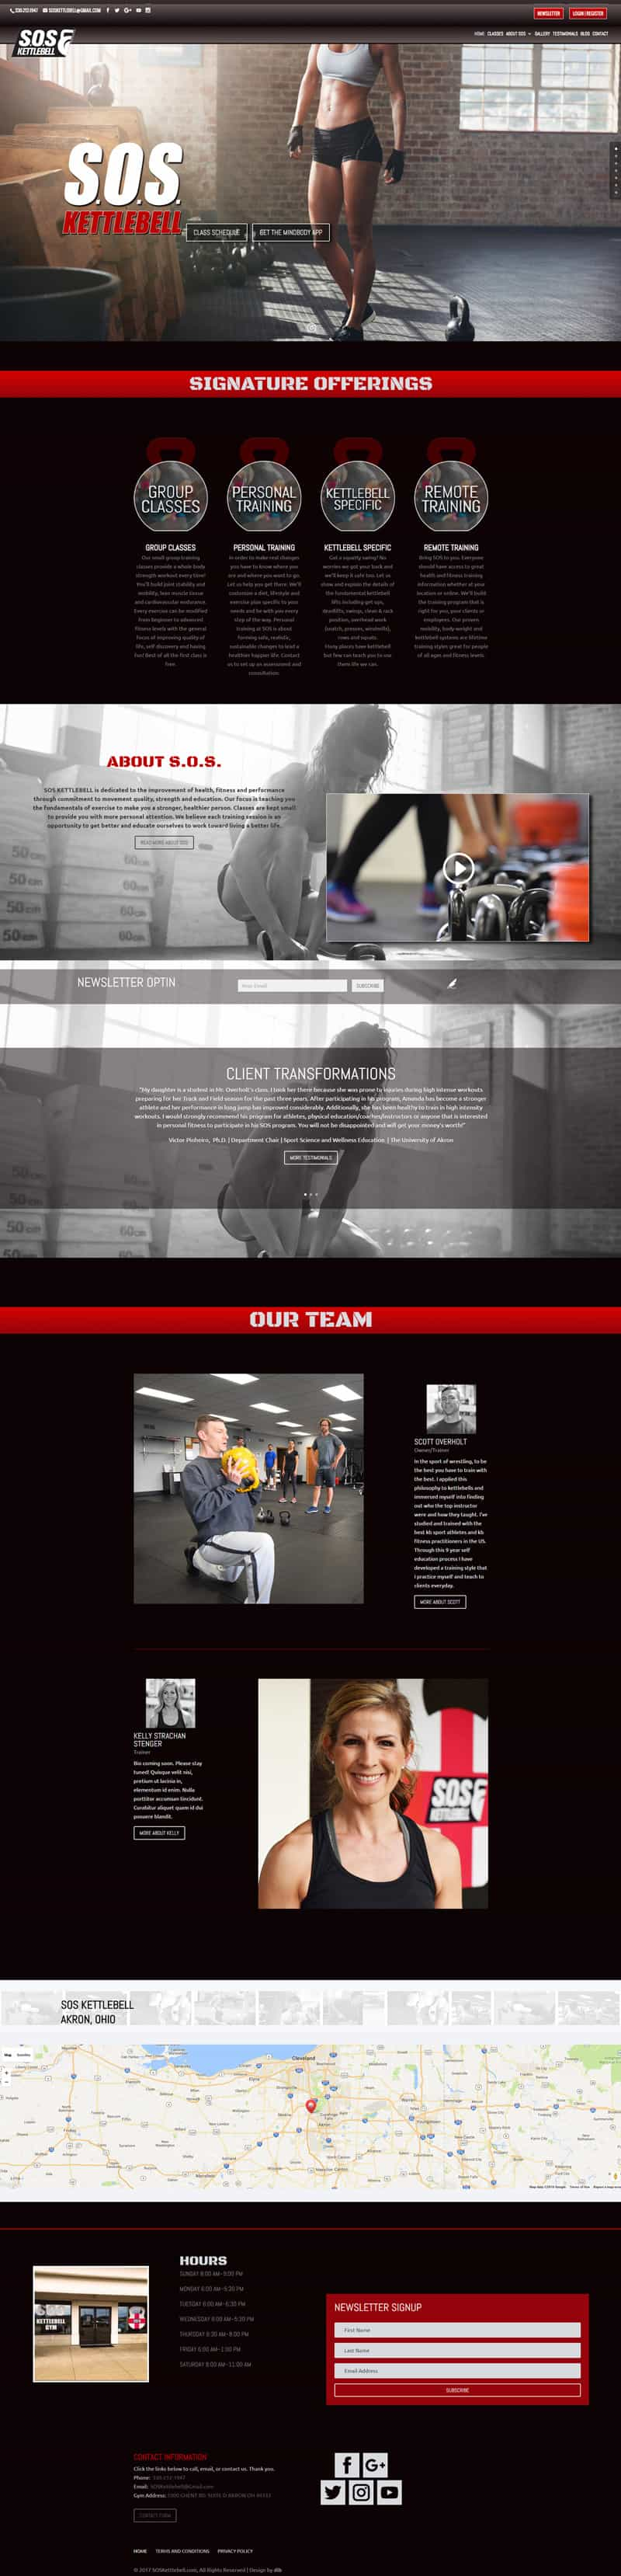 sos kettlebell home page image design by dlb web media akron ohio